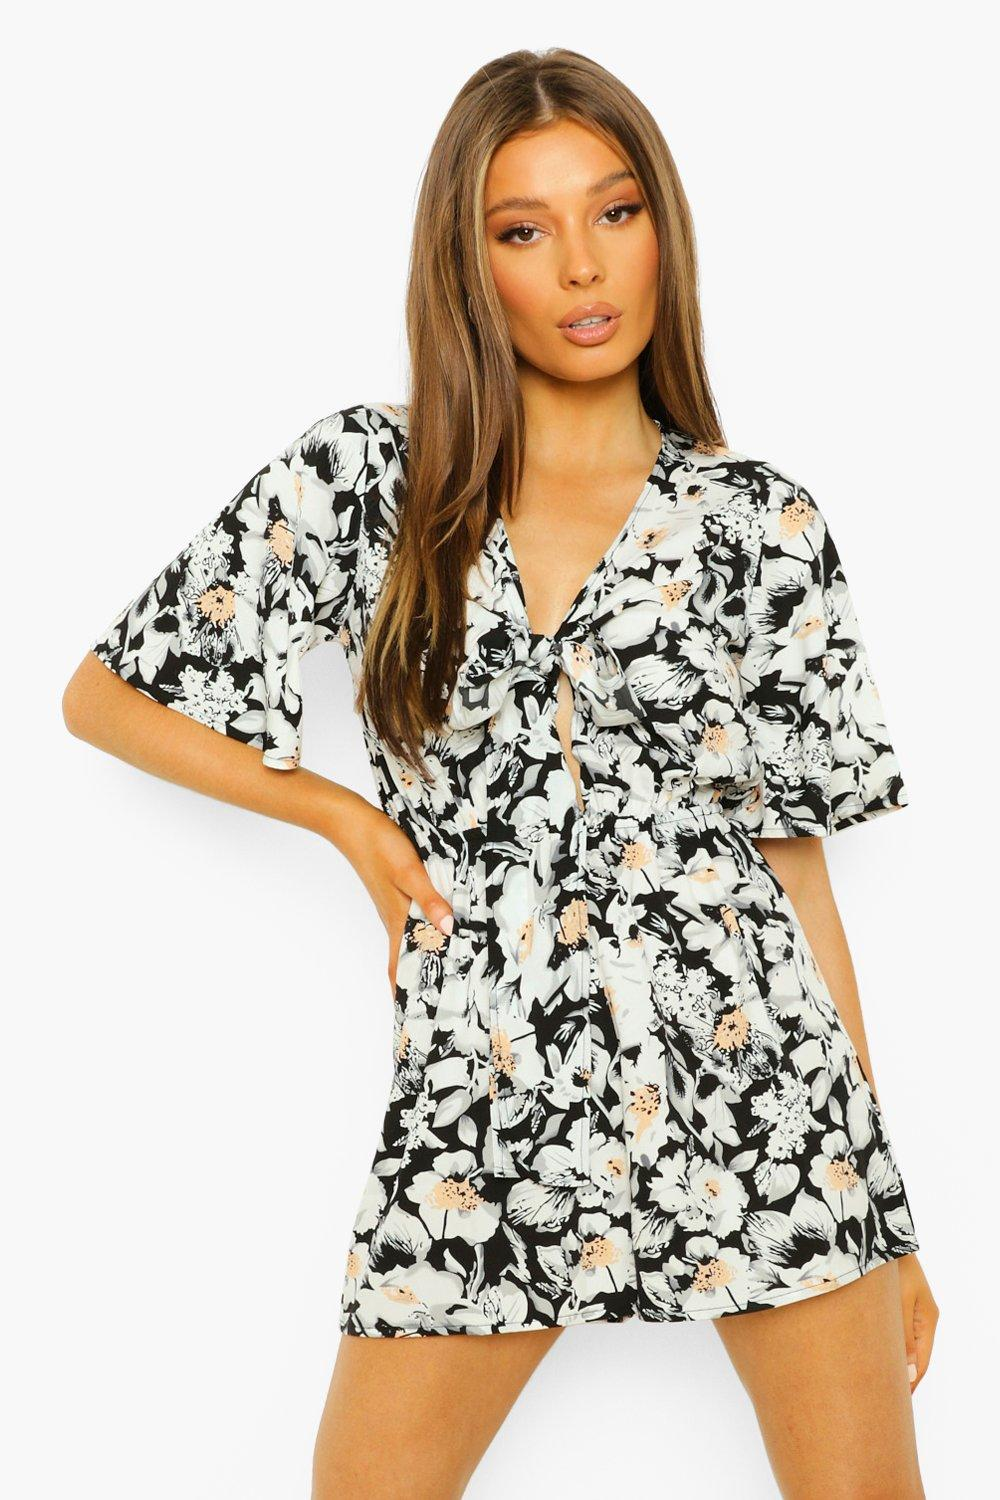 1930s Style Clothing and Fashion Womens Floral Tie Detail Romper - Black - 12 $14.40 AT vintagedancer.com